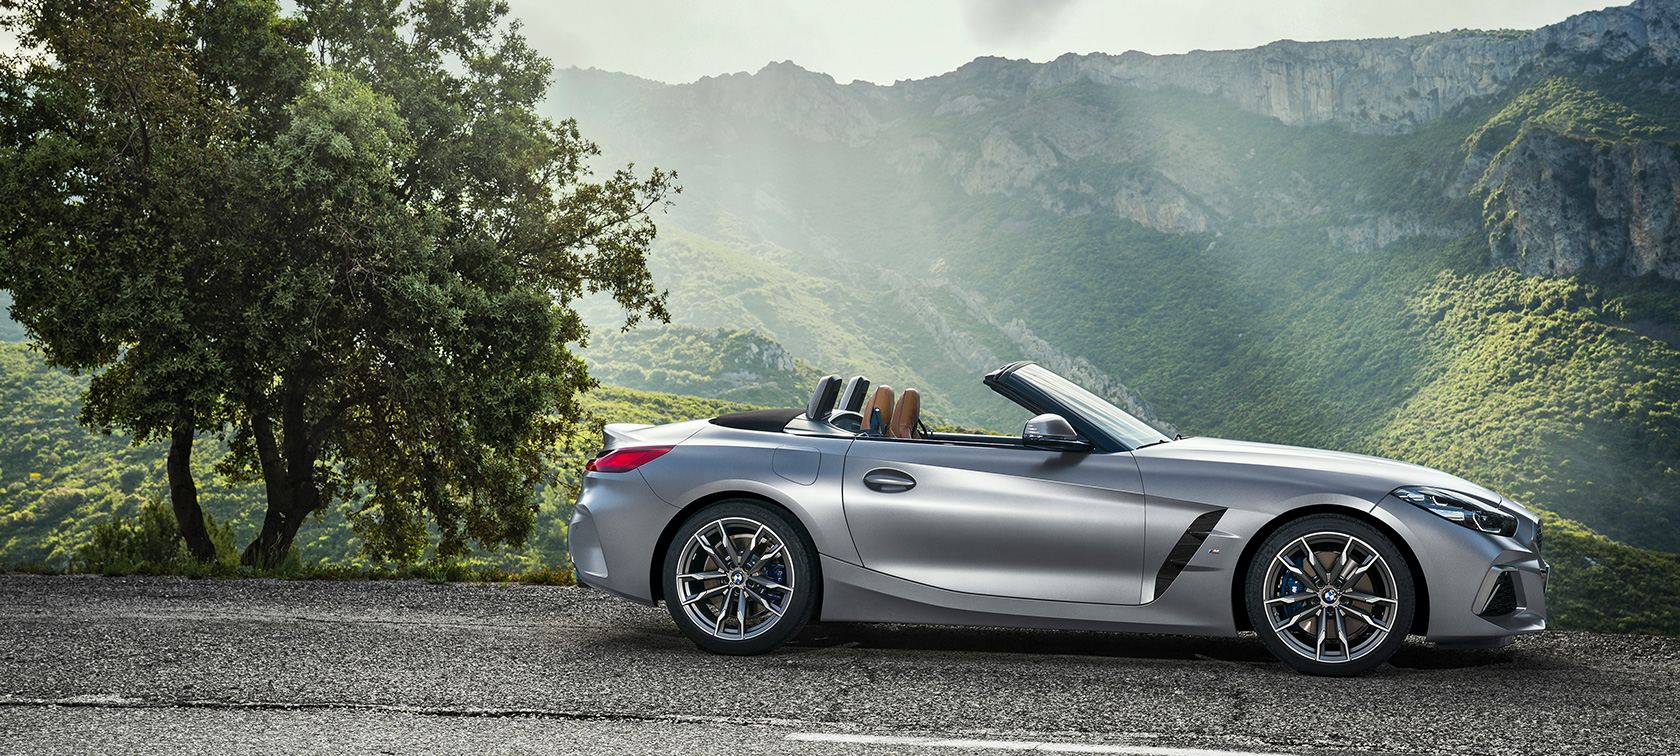 2020 BMW Z4 Roadster Price and Review